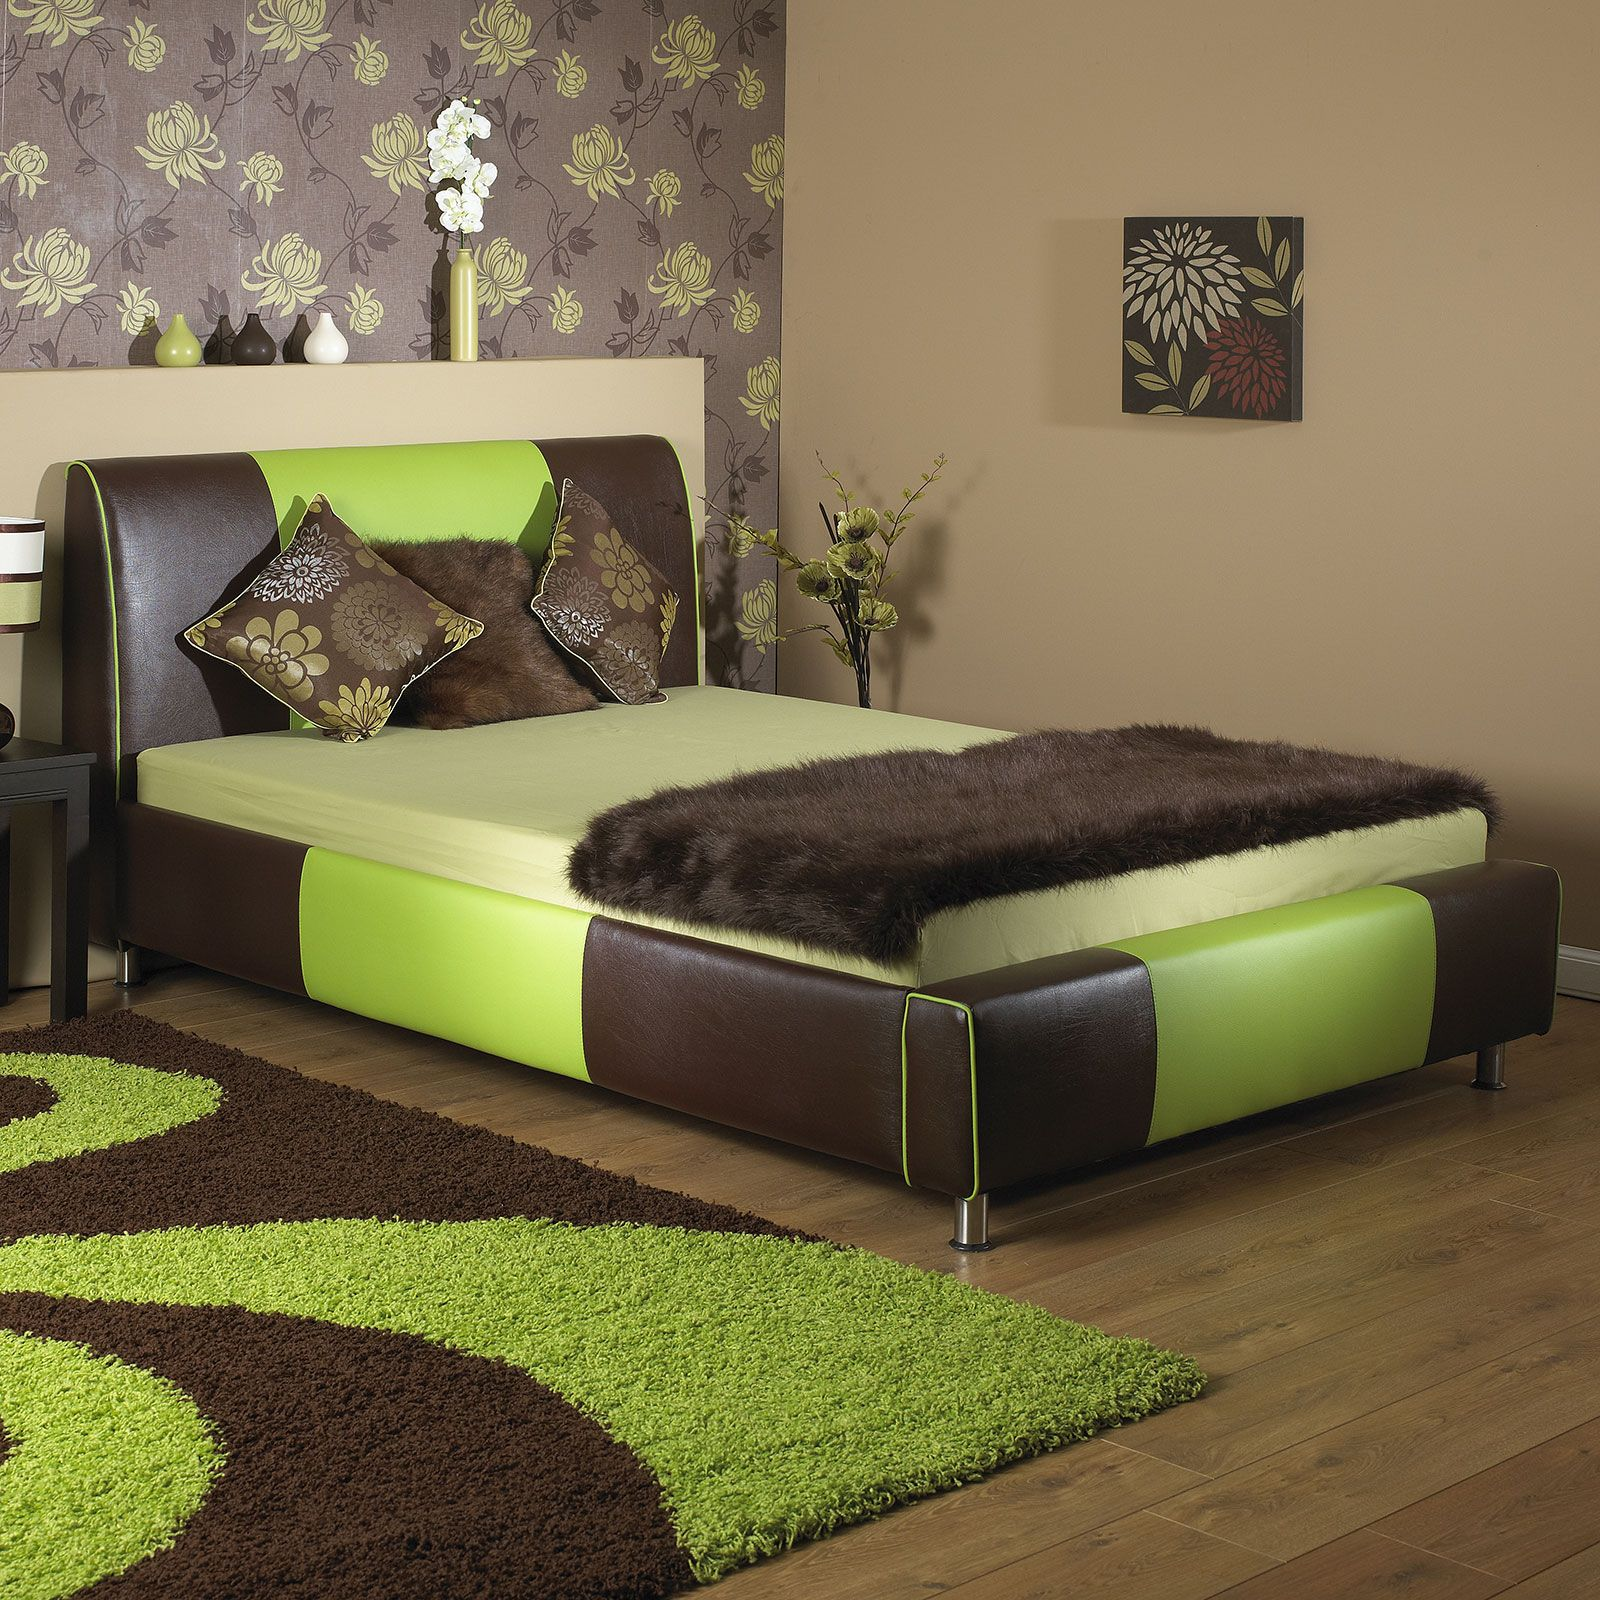 The A u0026 I Beds York faux